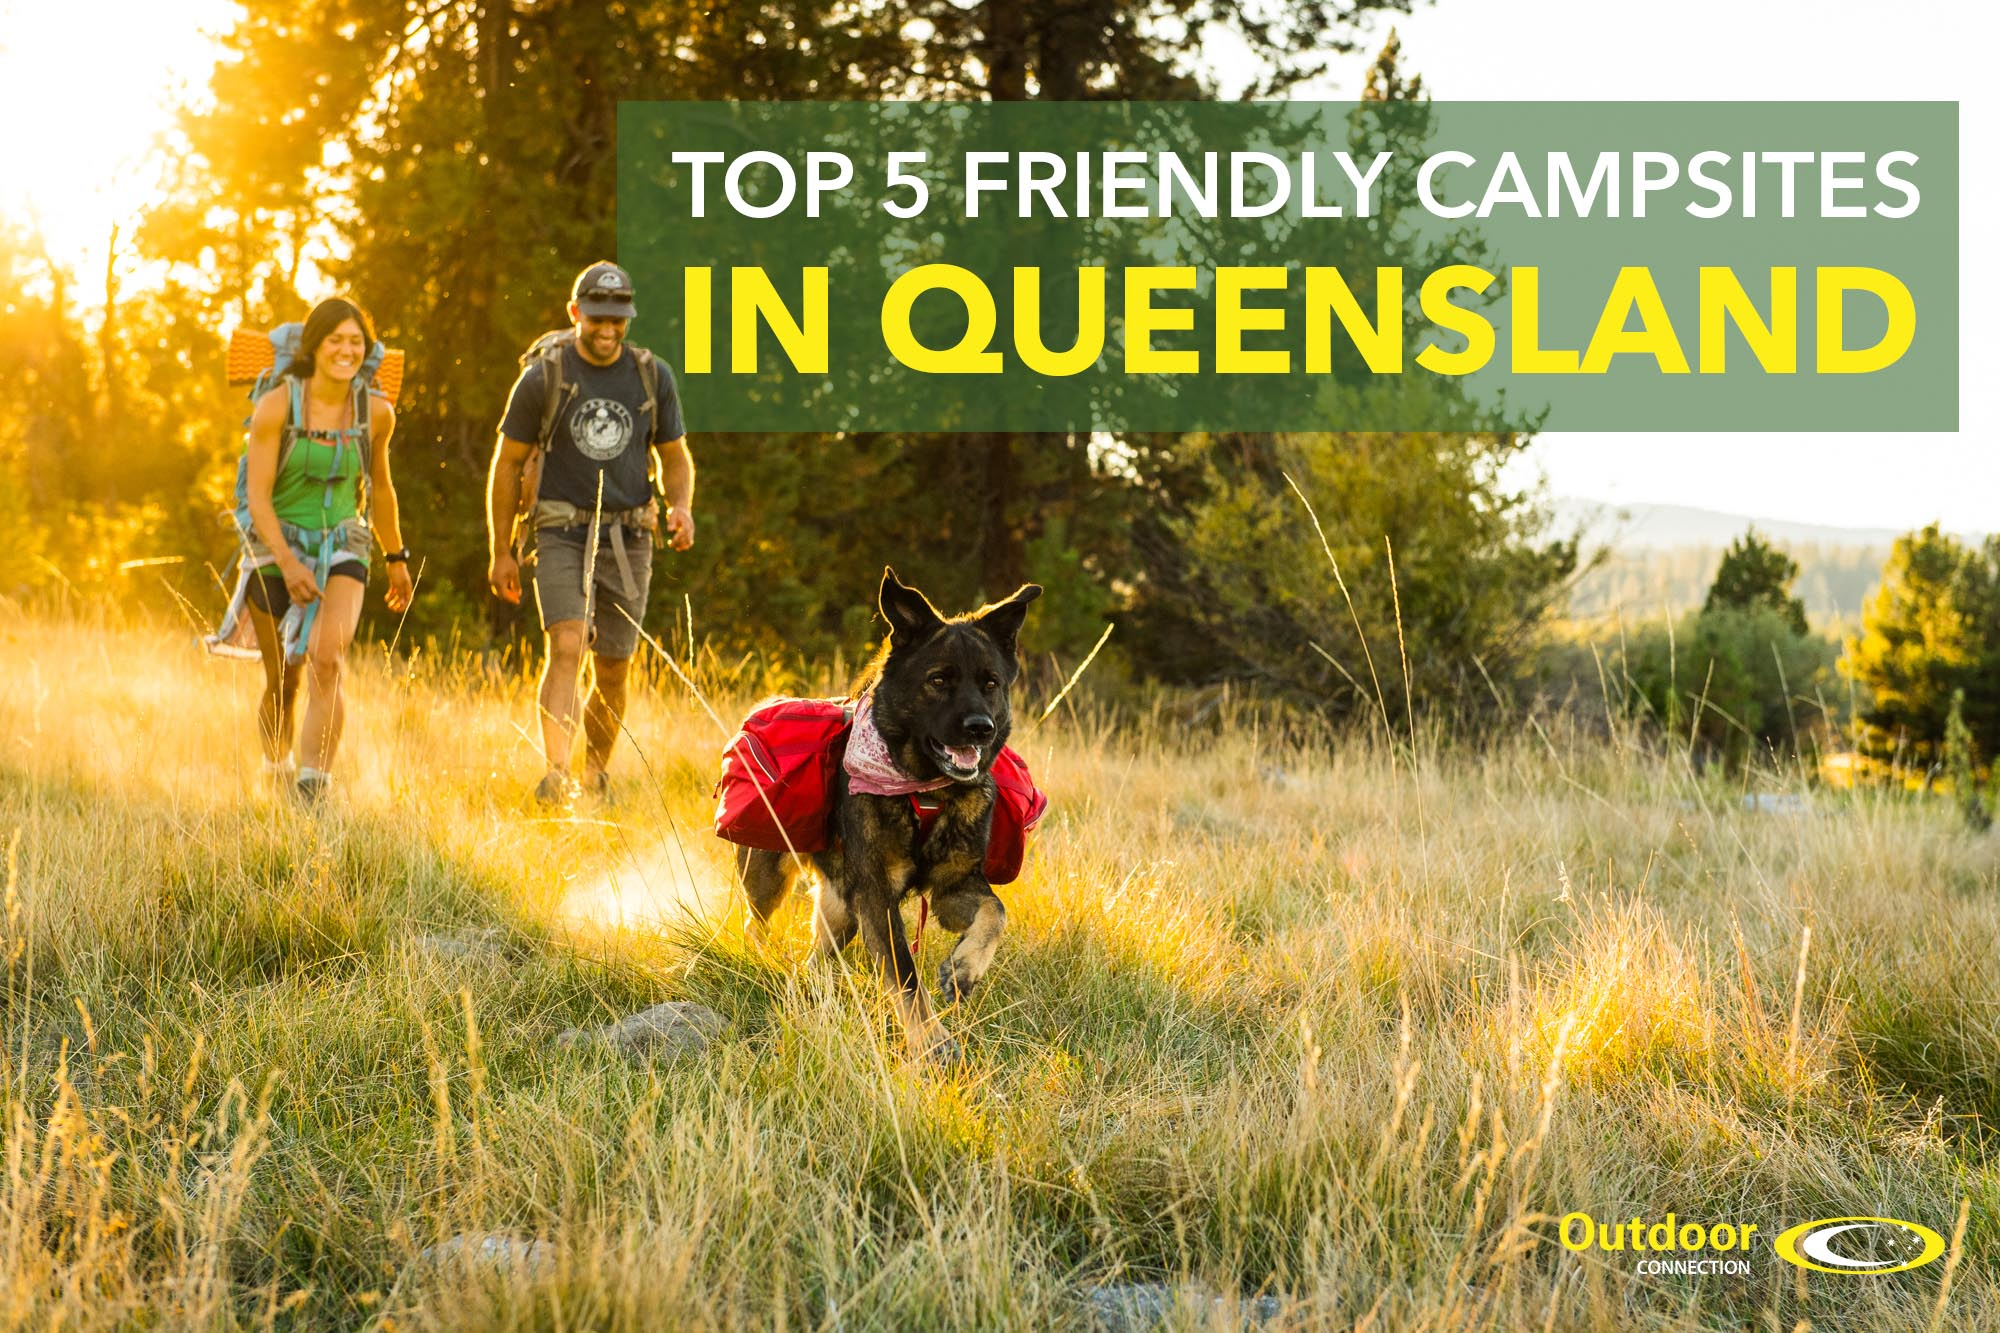 Top 5 Pet Friendly Campsites in Queensland